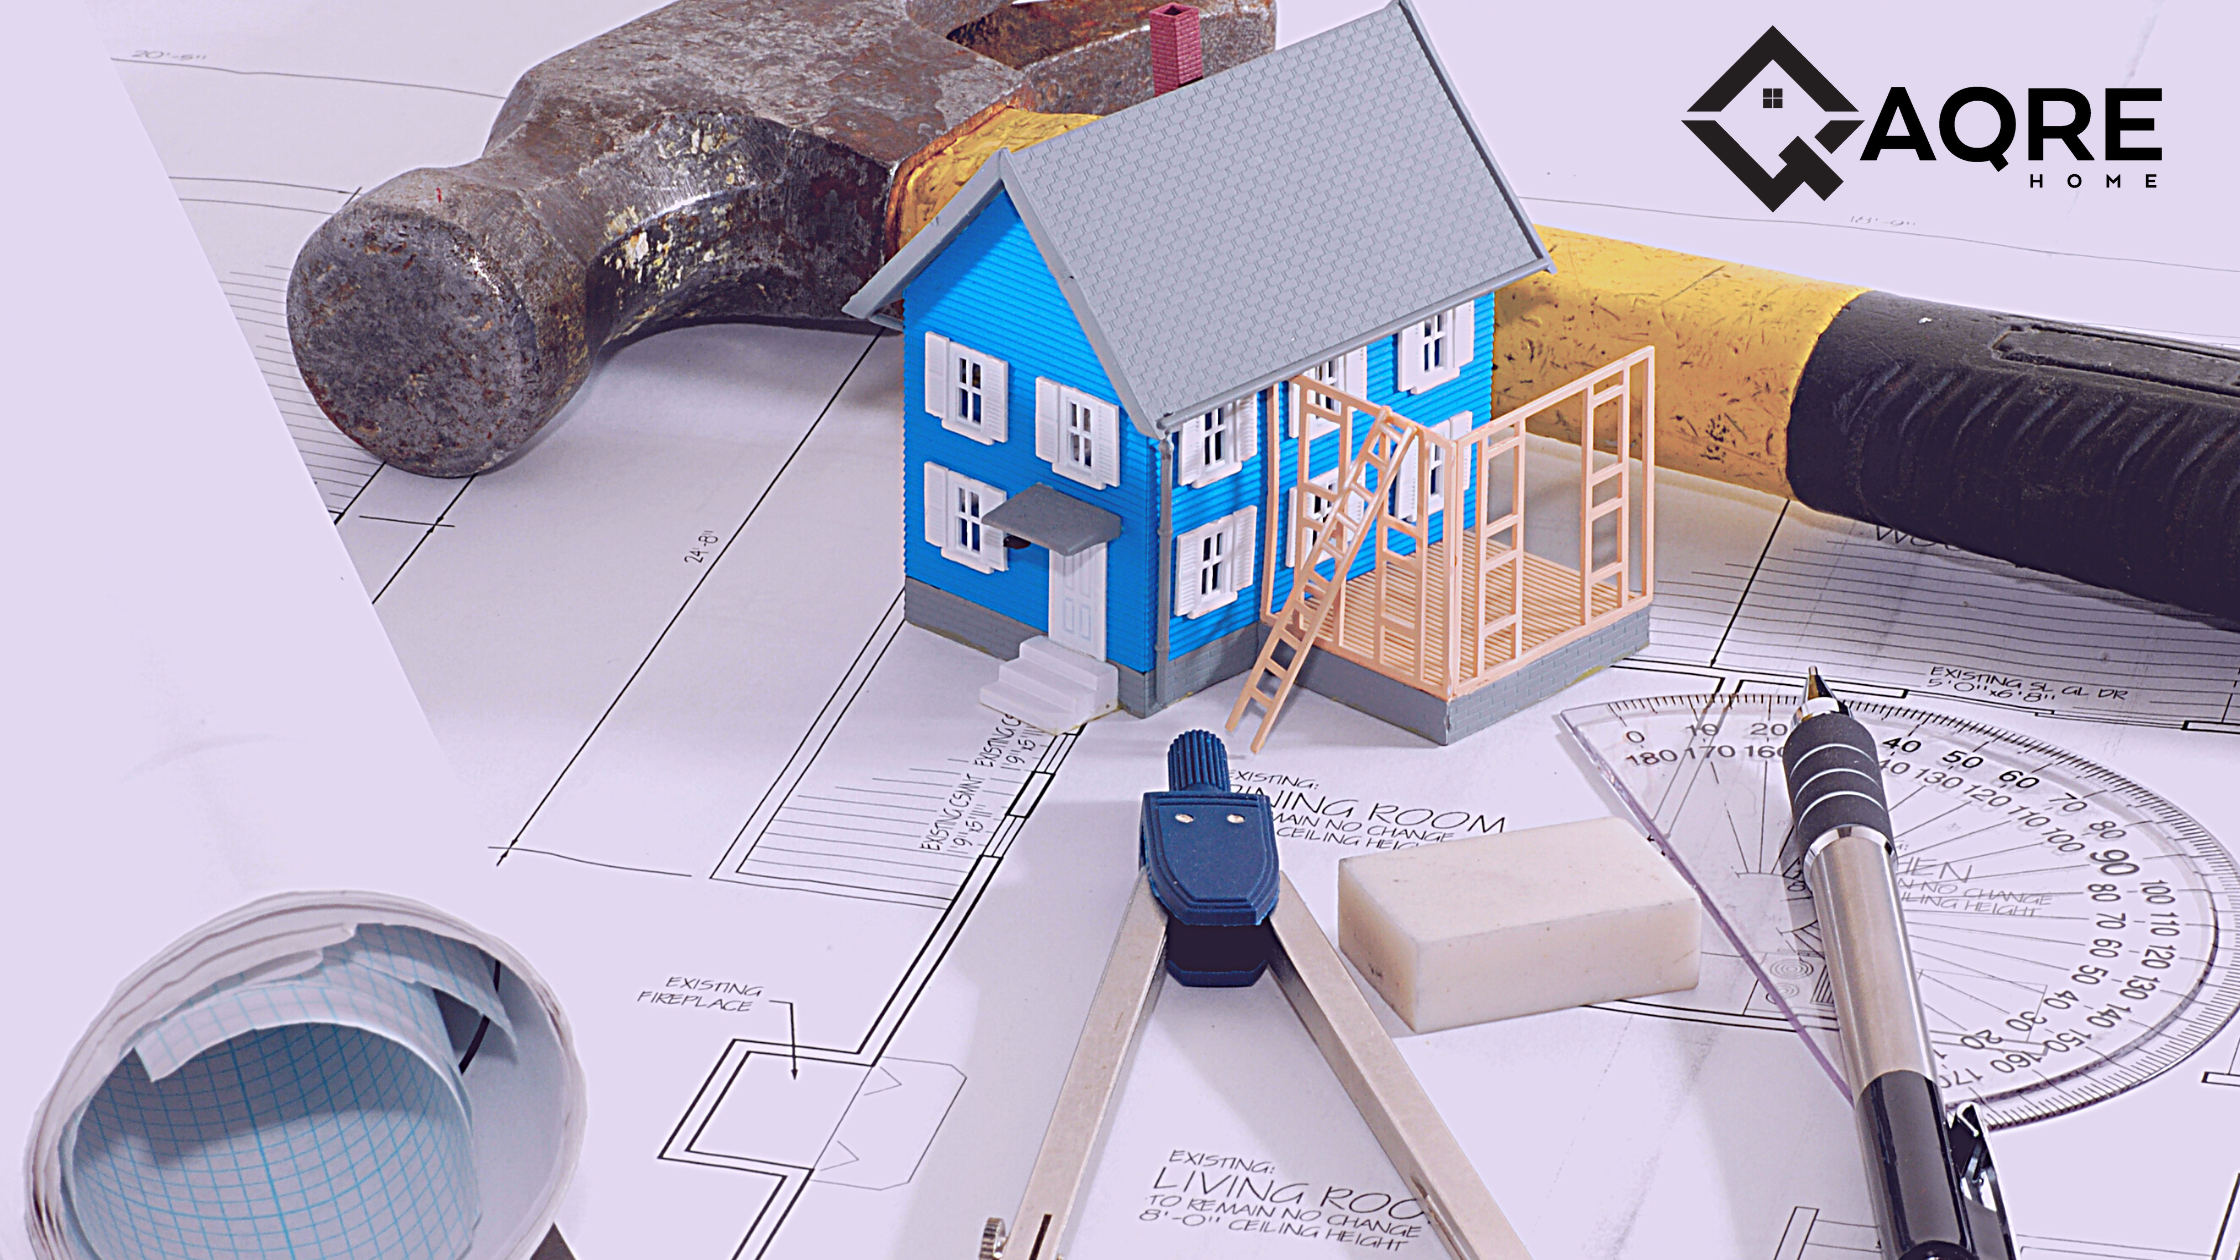 It's Hammer Time: 4 Common Remodeling Mistakes and How to Avoid Them